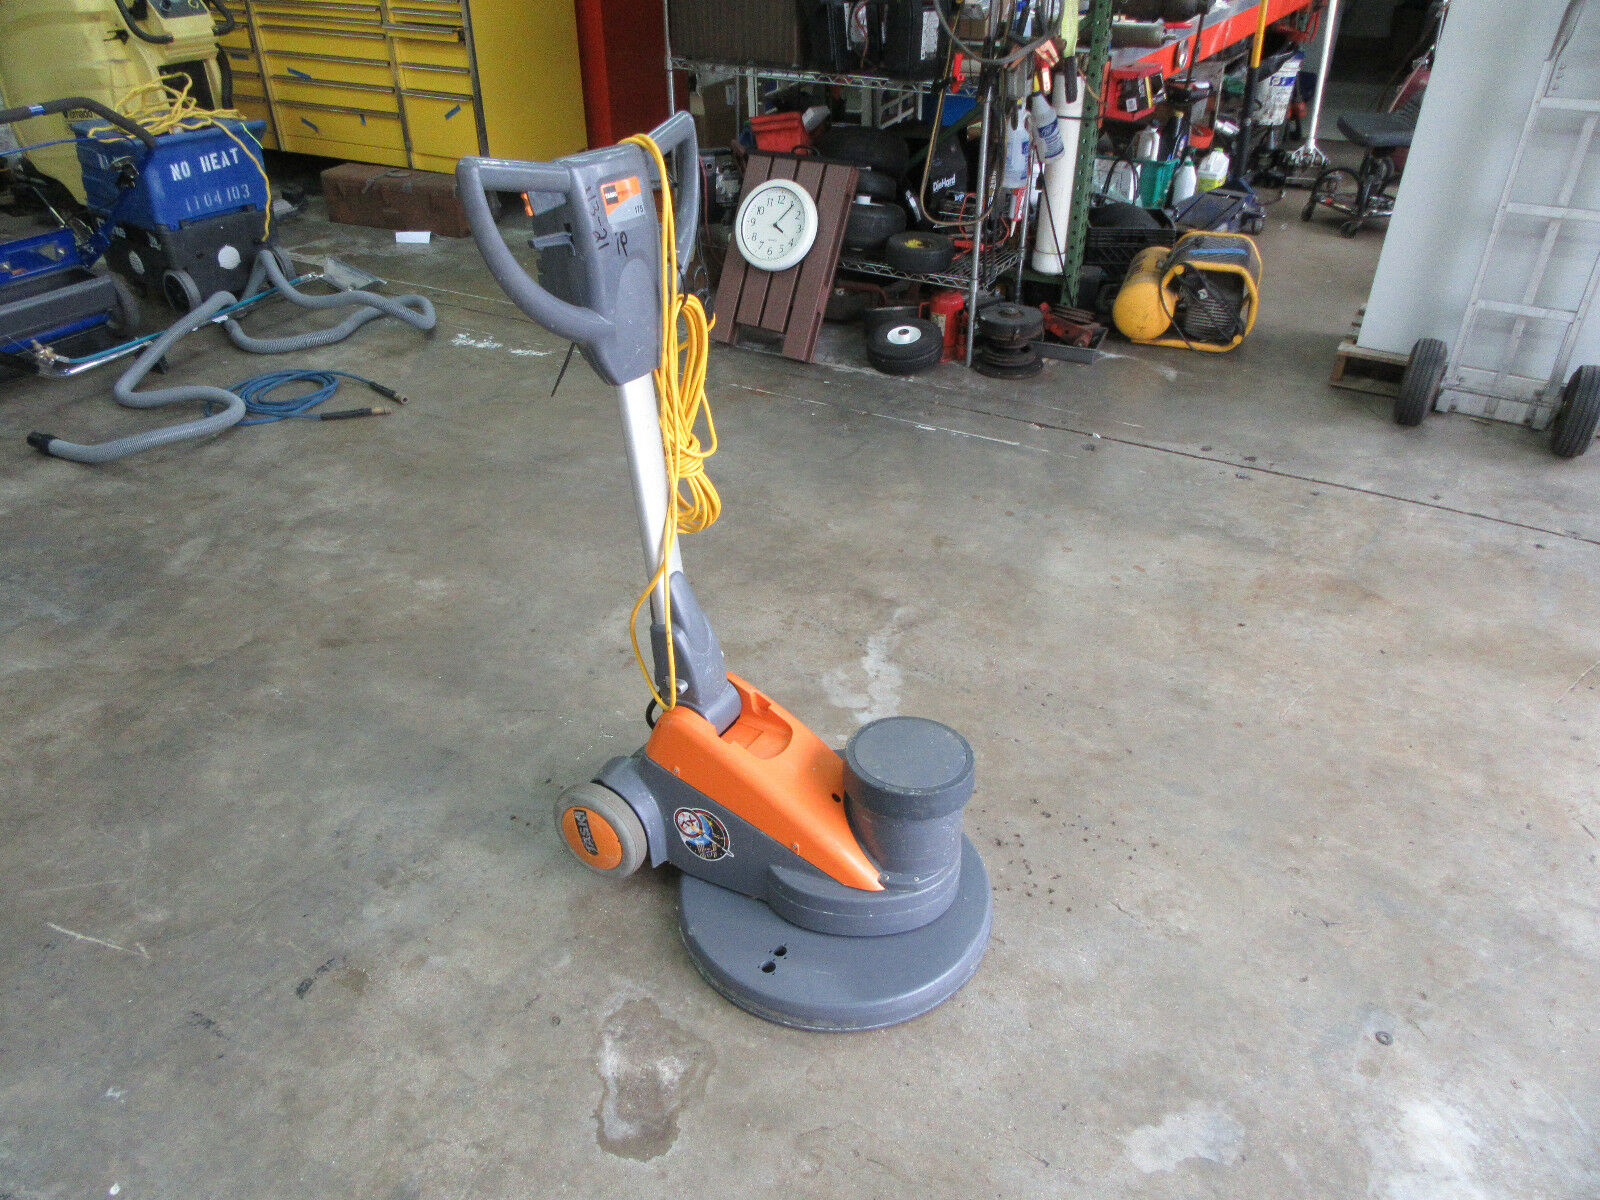 Taski Ergodisc 175 Slow Speed Electric Floor Buffer 20